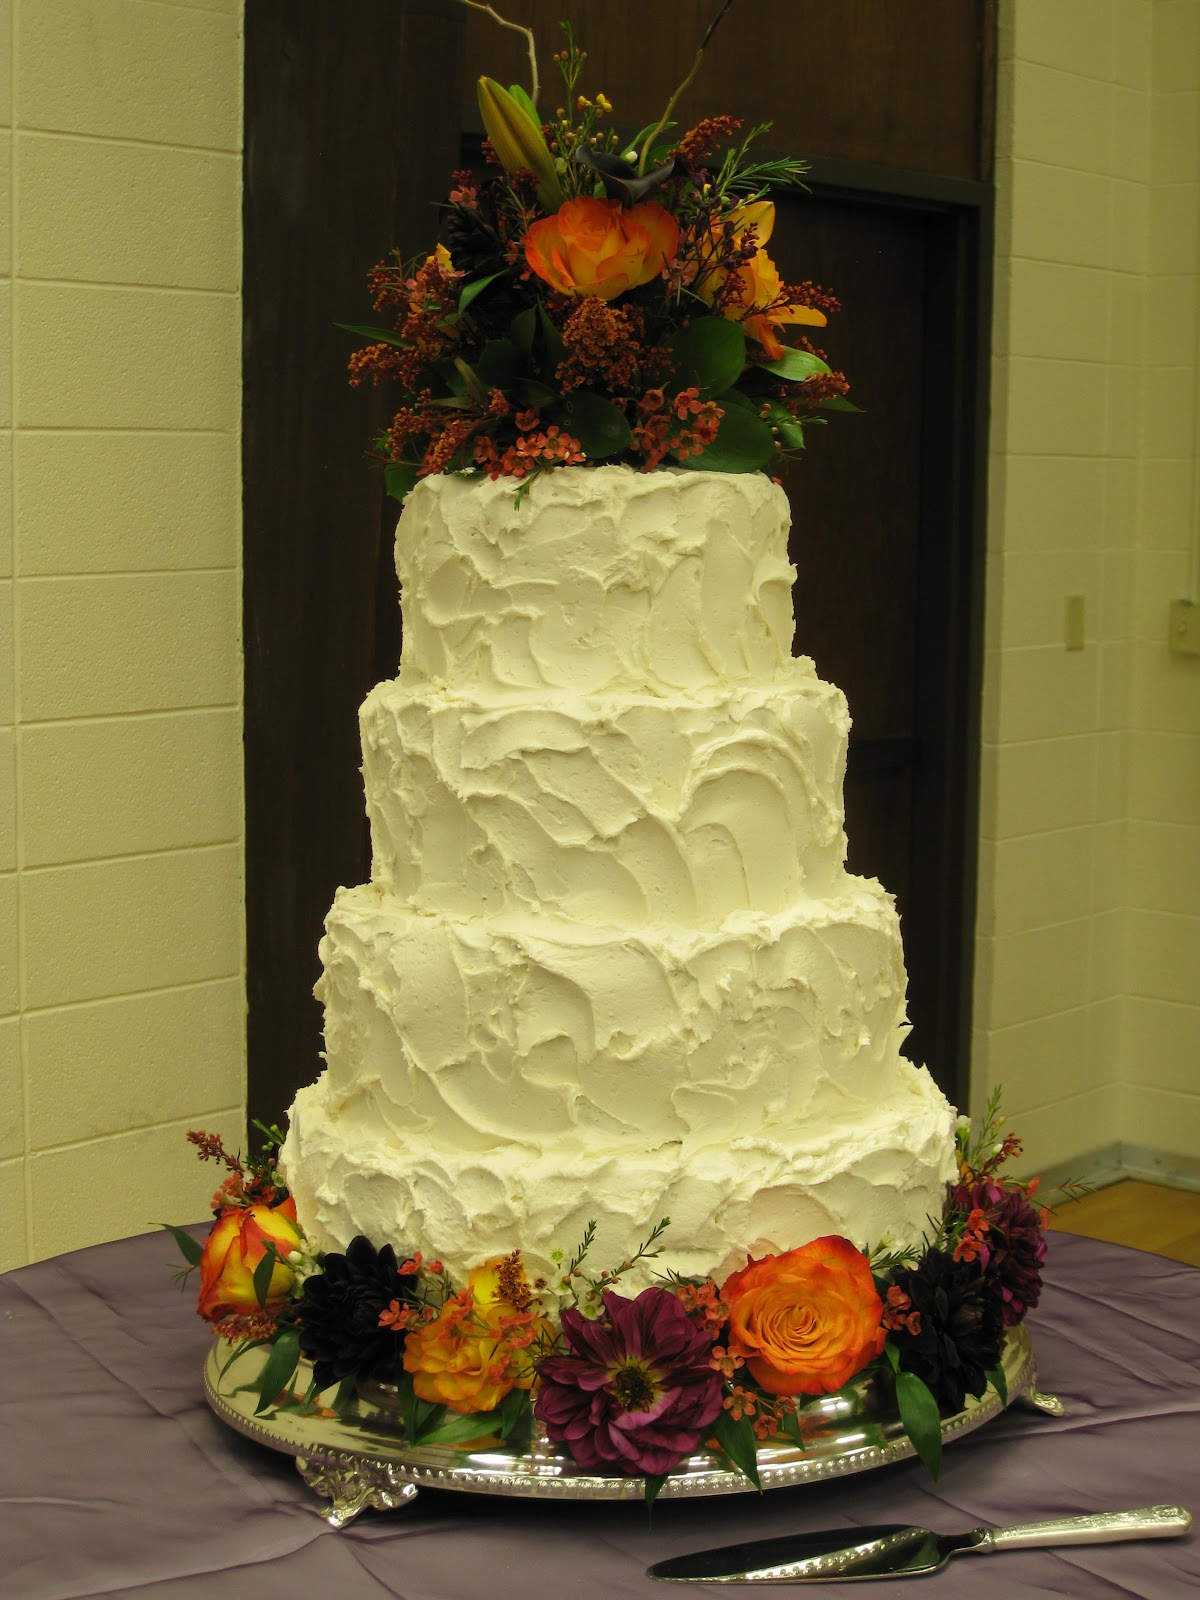 alipyper: Wedding Carrot Cake Recipe